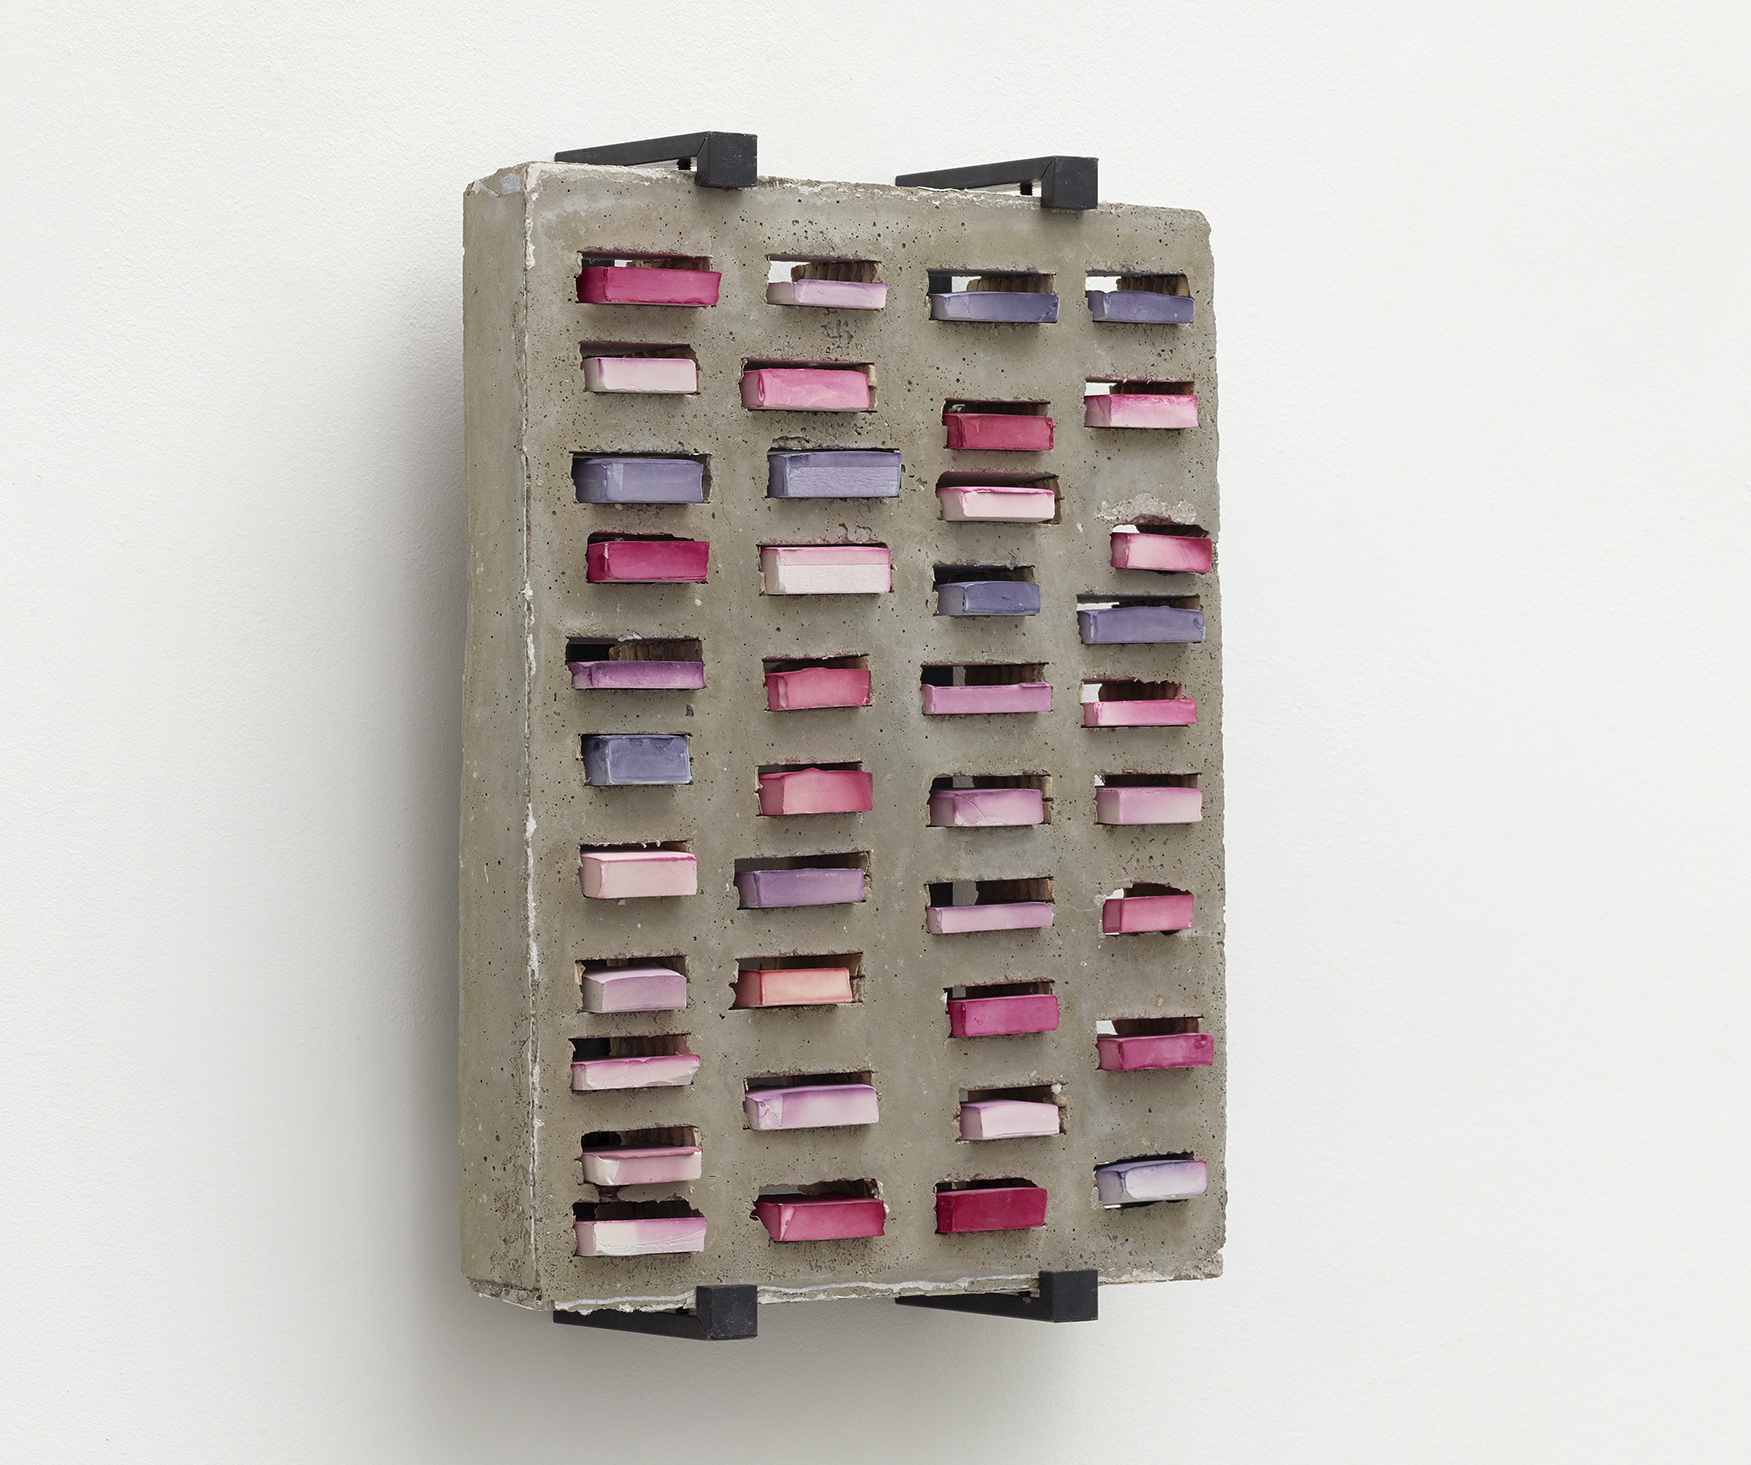 Tove Storch Untitled, 2020 Concrete, colored plaster, steel 49 x 36,5 x 11,5 cm (19,29 x 14,37 x 4,53 in) A certificate of authenticity signed by the artist must follow the work